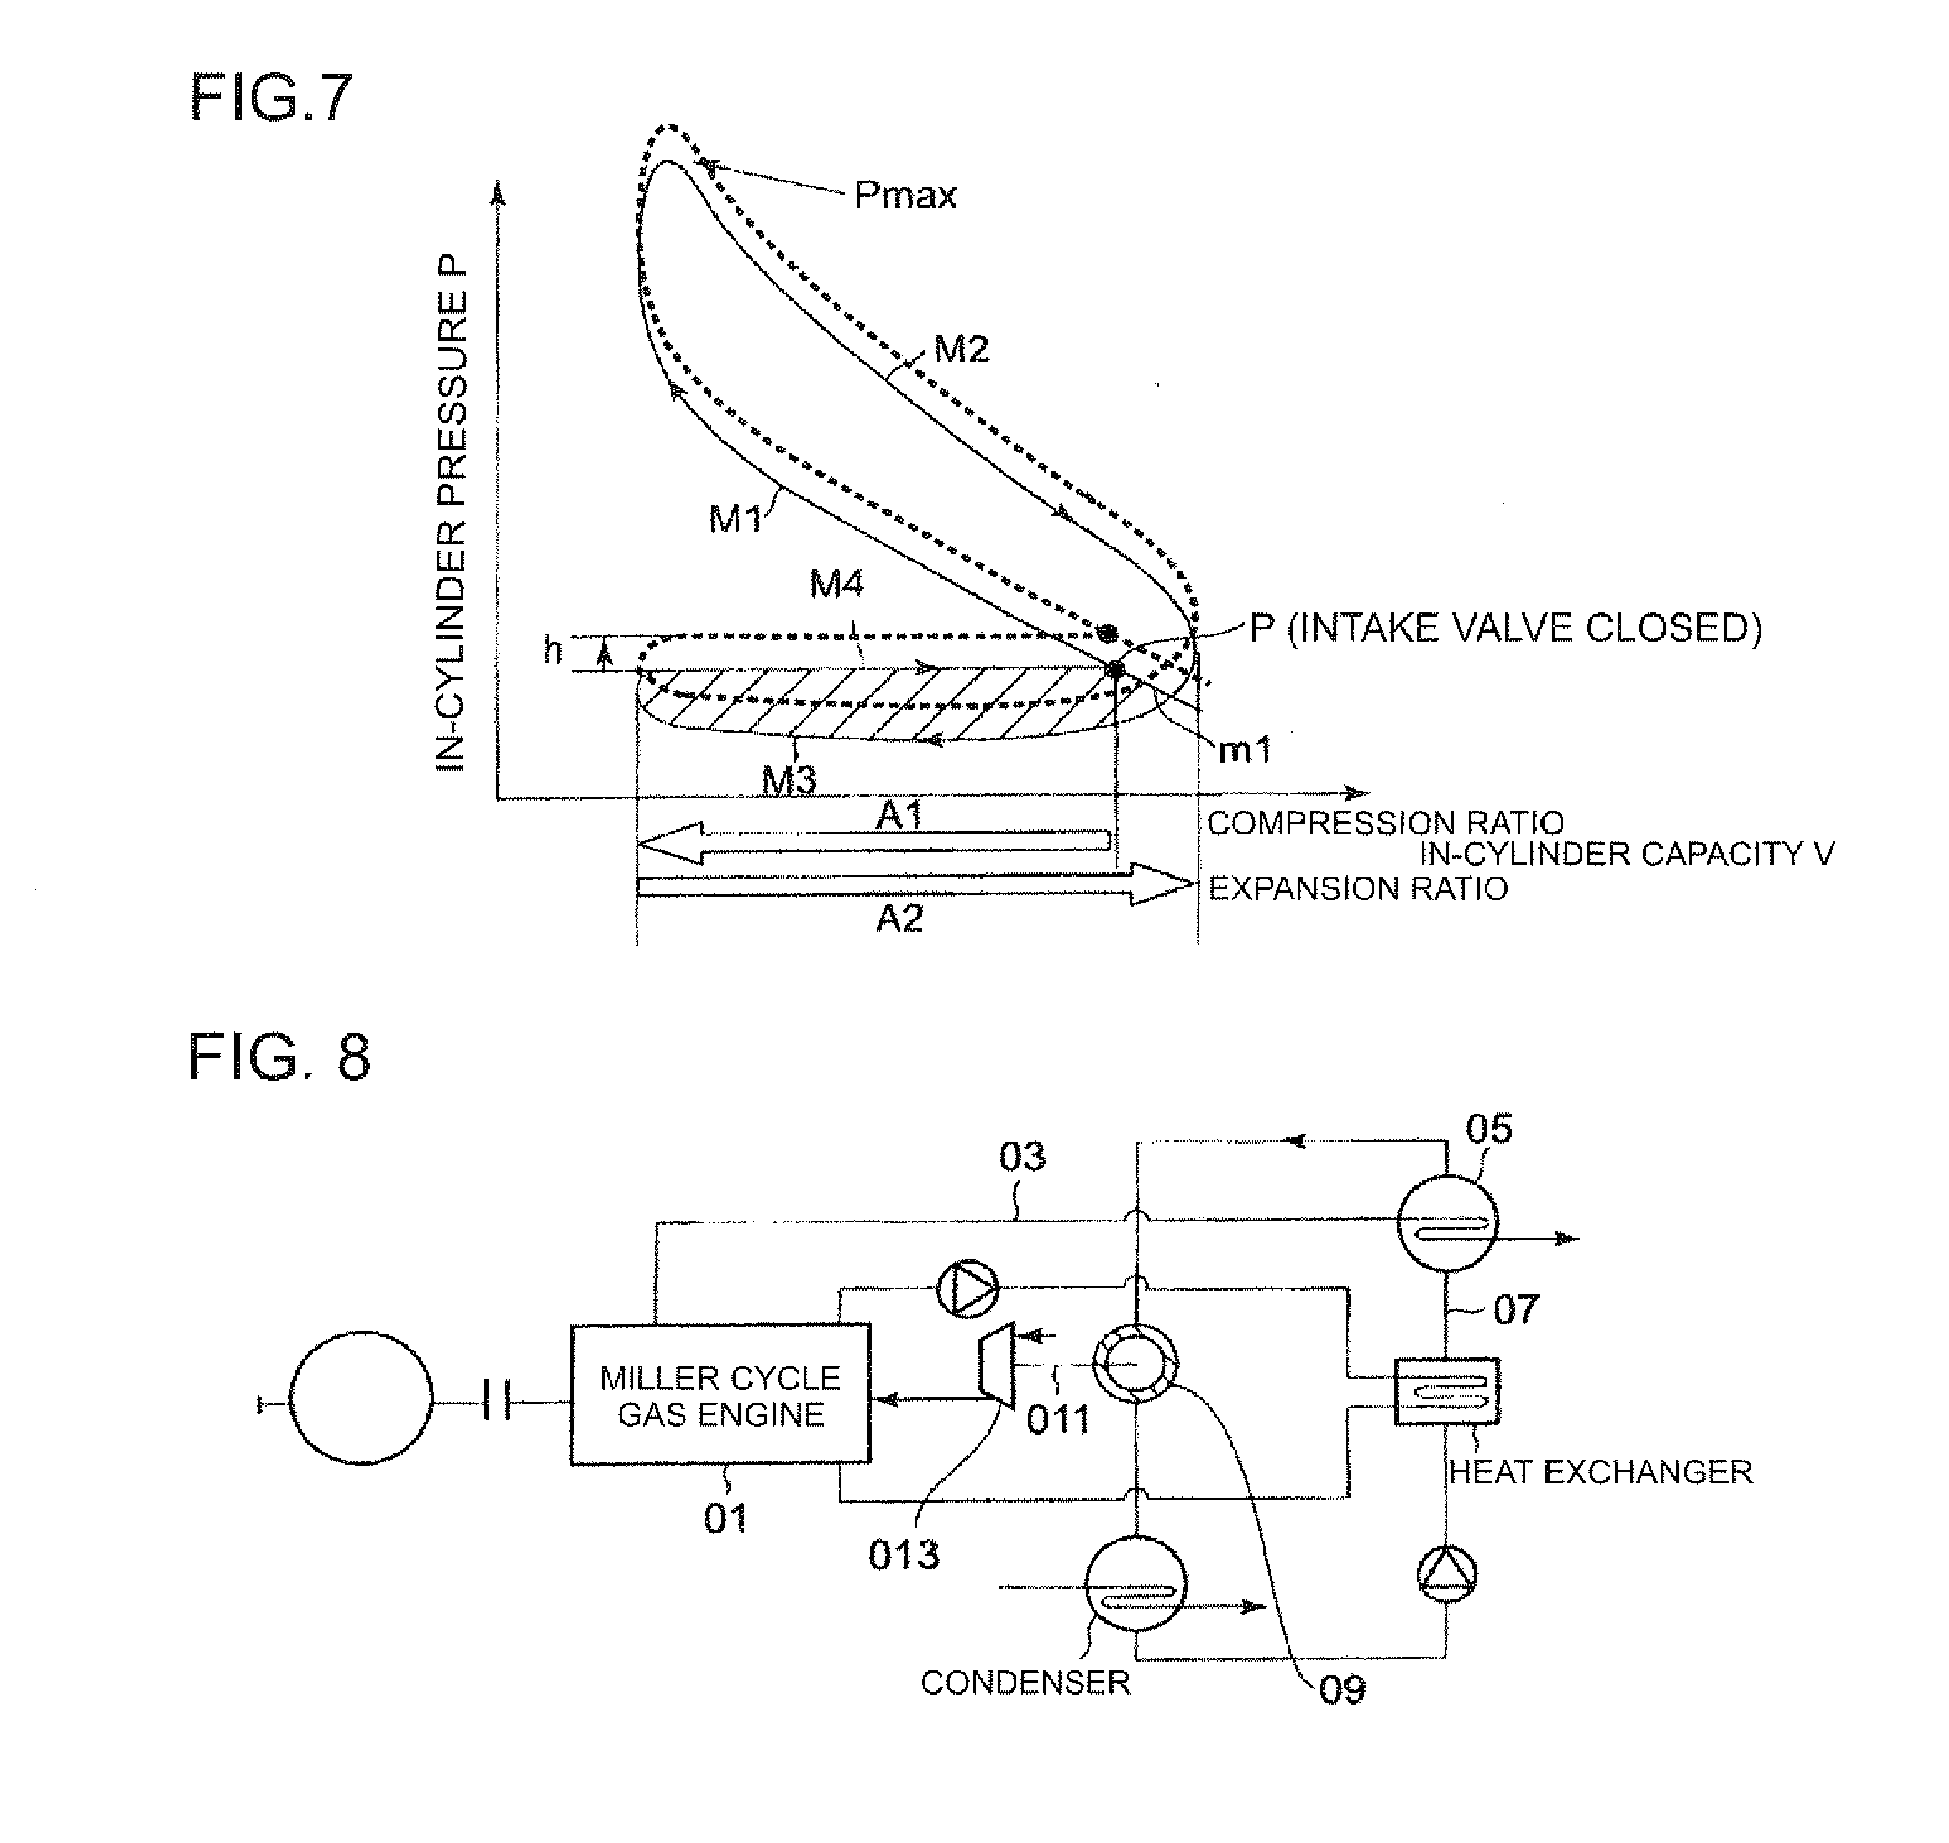 miller cycle engine diagram 1999 patent ep2489861a1 - miller cycle engine - google patents parts of a four cycle engine diagram